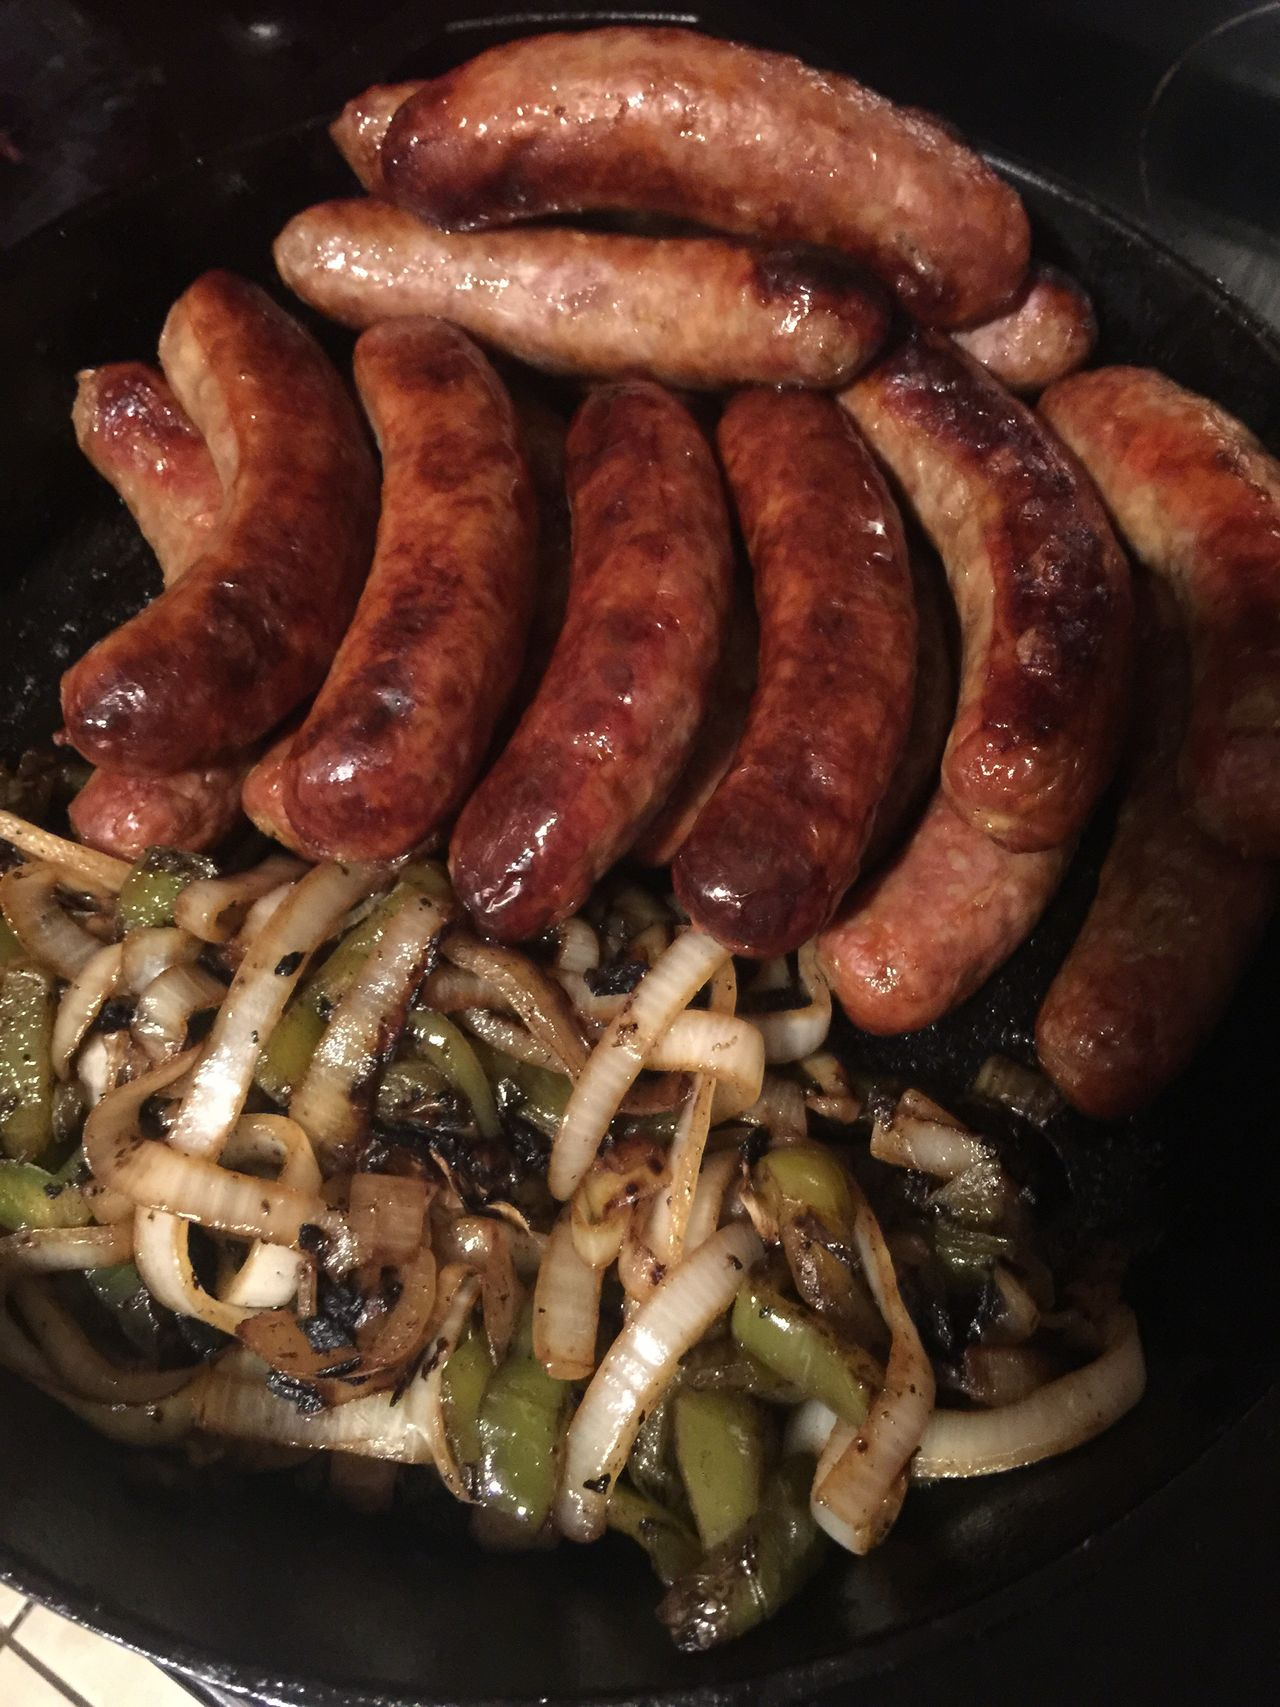 Brats Iron Skillet Cooking